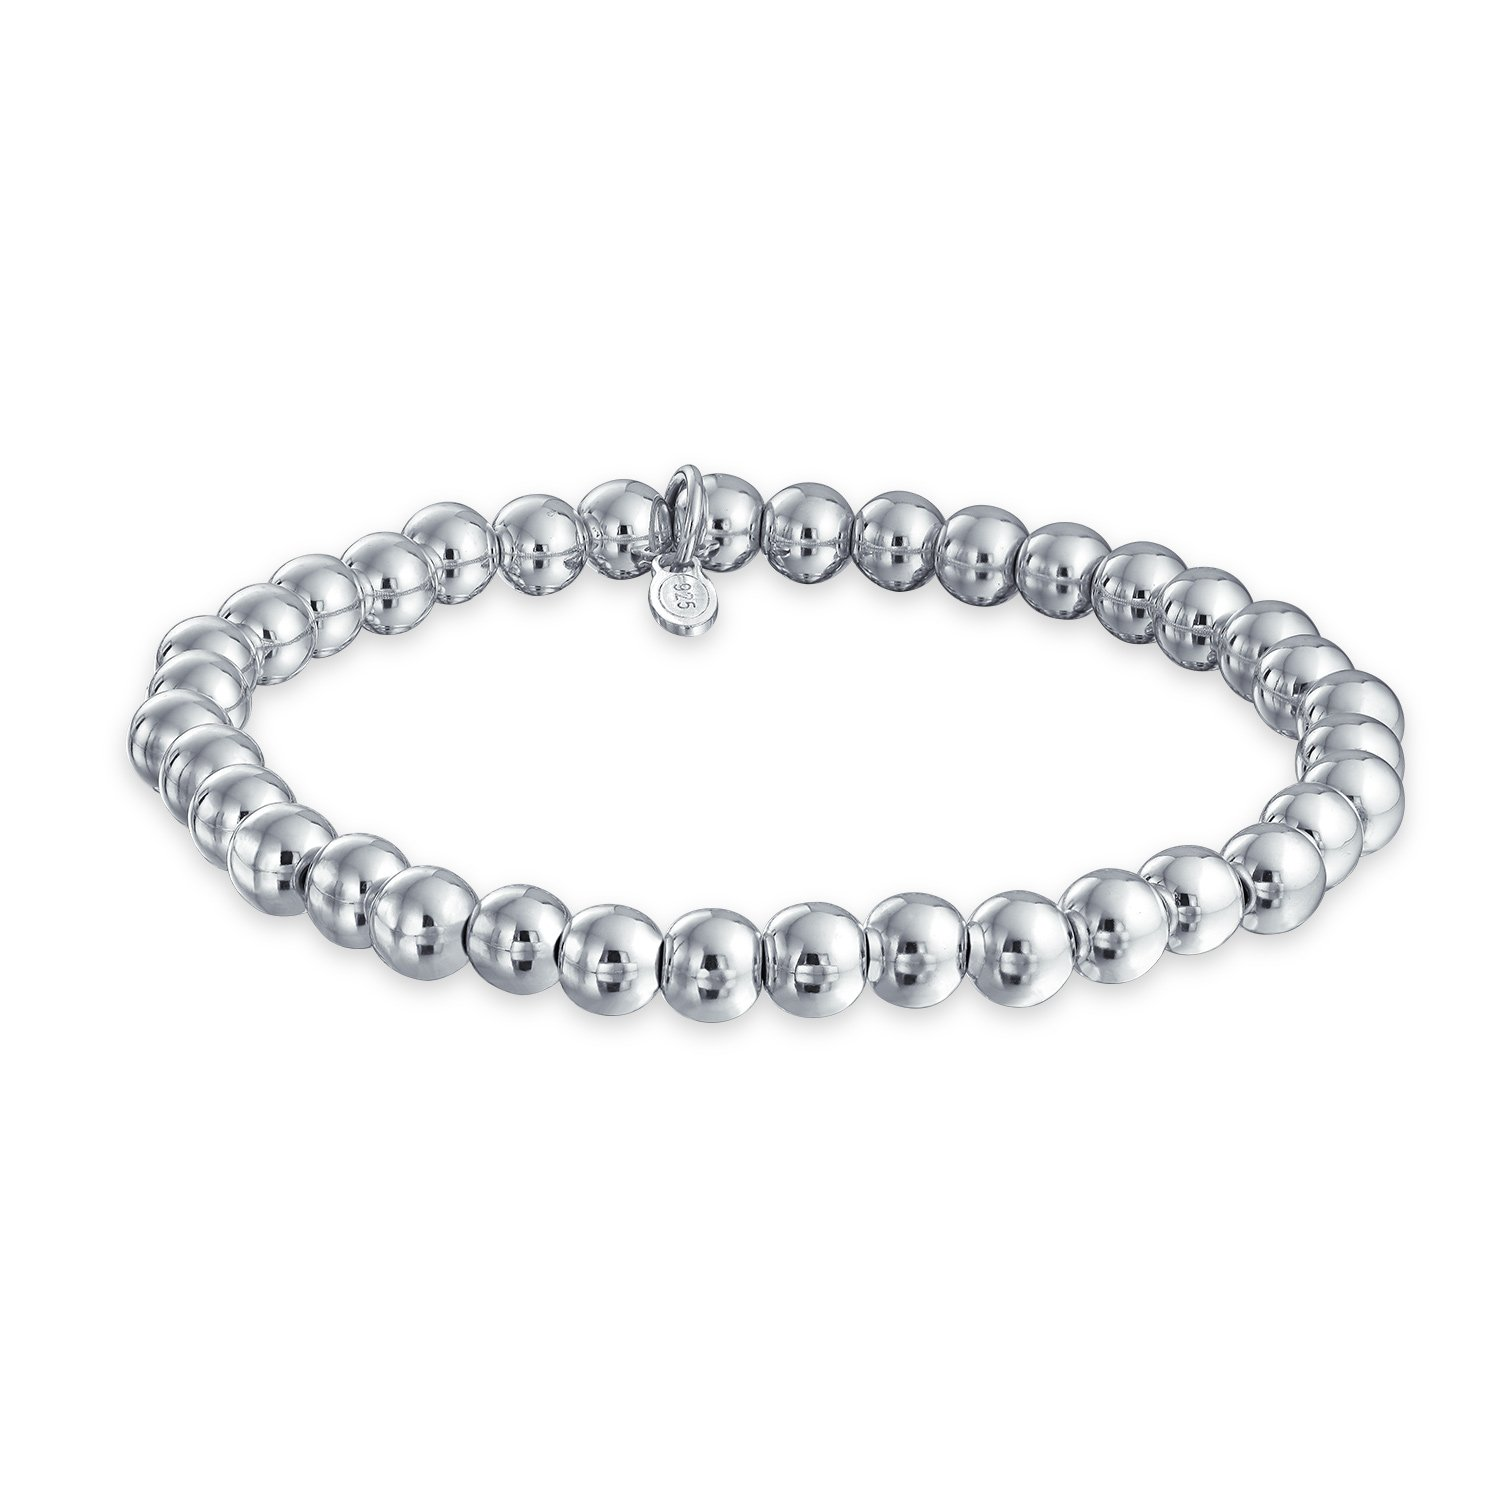 Sterling Silver 6mm Bead Stretch Bracelet Stackable 7.5 Inch